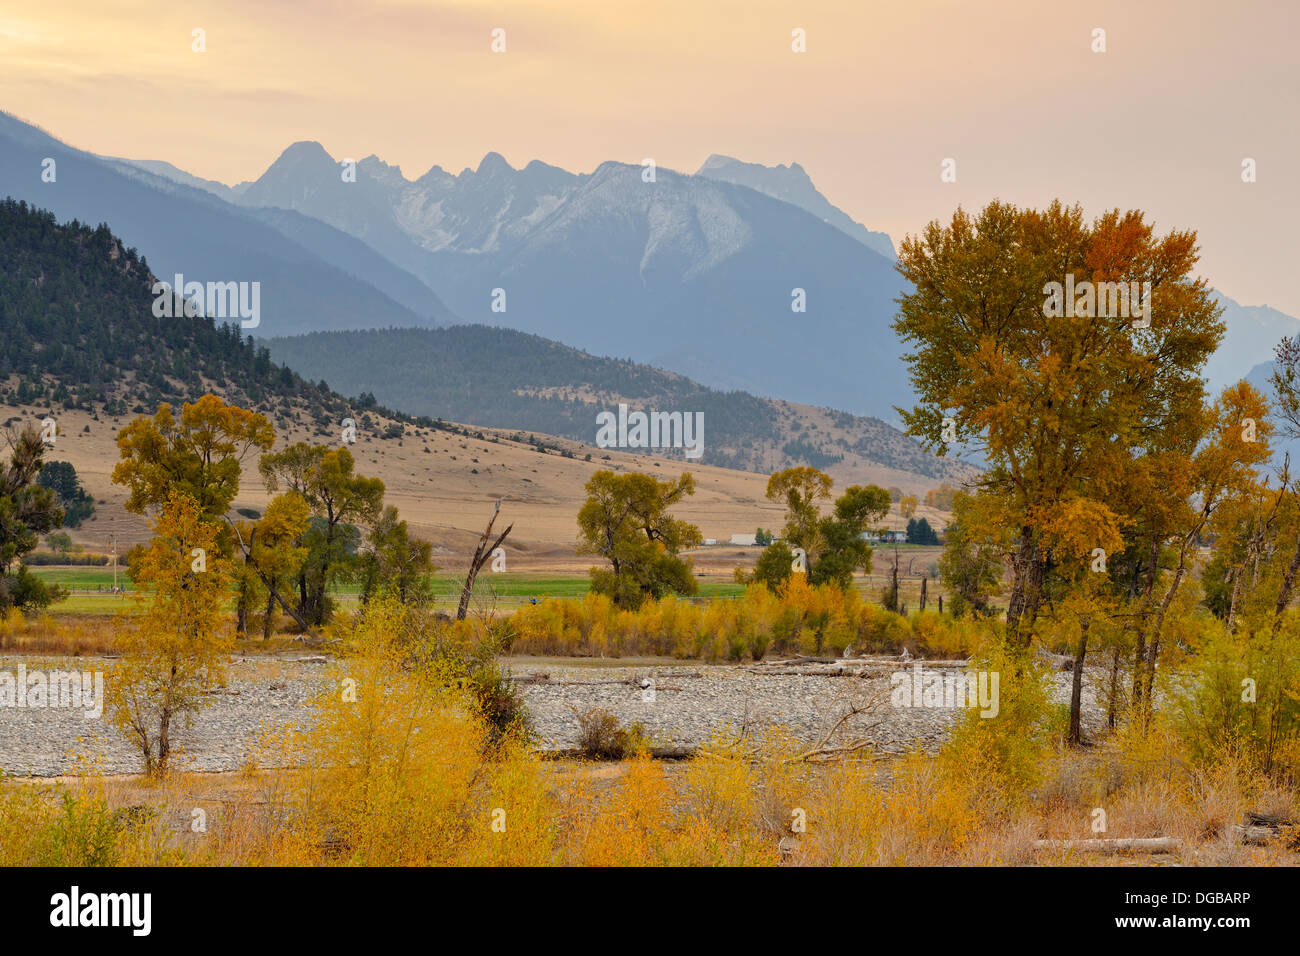 Autumn foliage on cottonwoods along the Yellowstone River with the Absaroka Range near de Puy Spring Creek Livingston MT USA - Stock Image